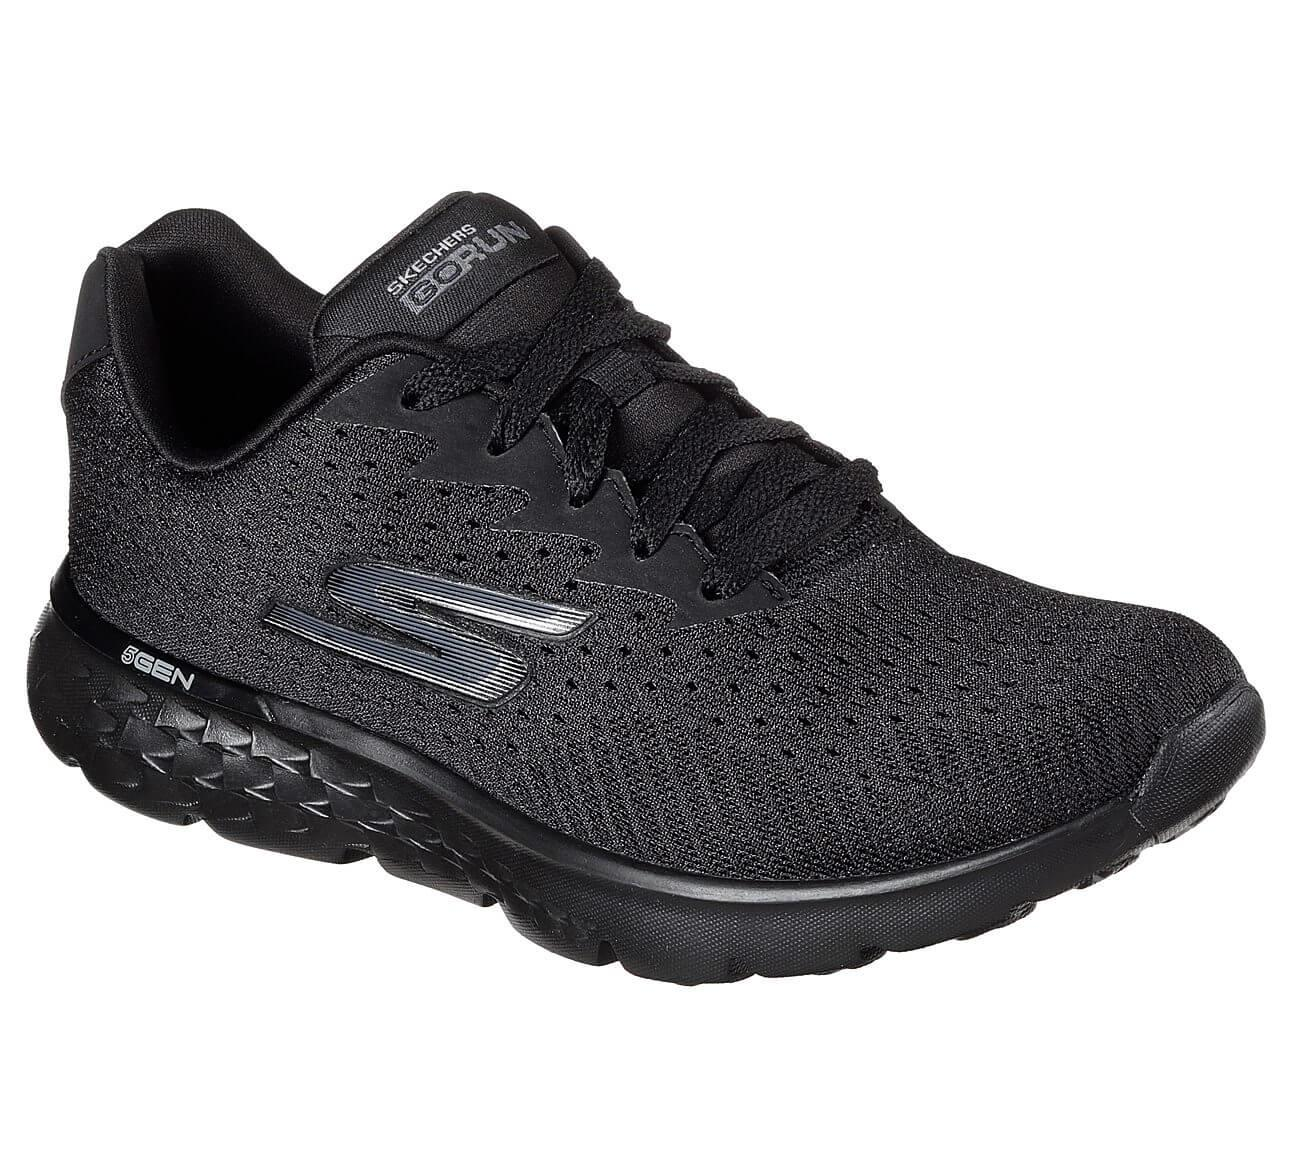 Shop Skechers at Shoe Carnival! Find great deals on Skechers shoes in Shoe Carnival stores and online! Menu. Shoe Carnival. Search Catalog Enter Keyword or Item No. Stores. Account. Login Register. Womens View All Womens New Arrivals Boots Athletics Sandals.